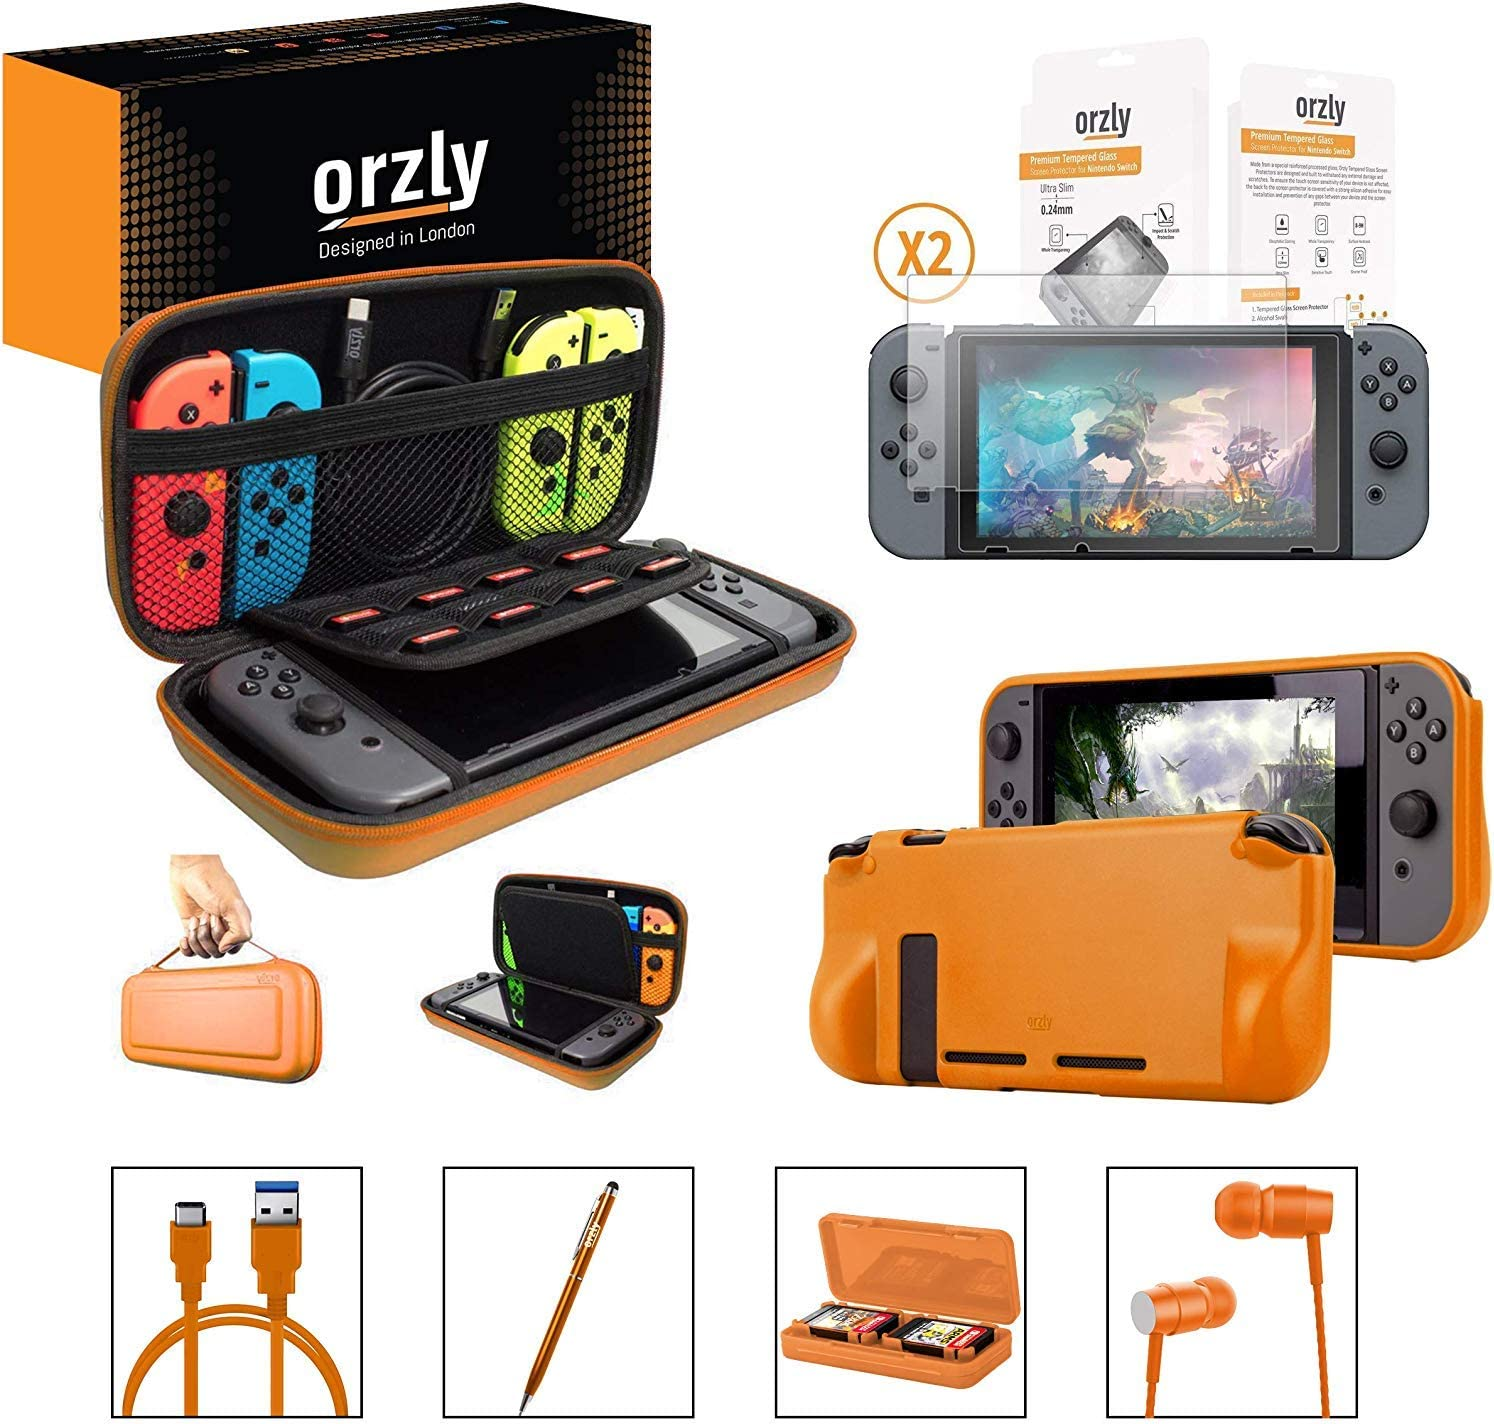 Orzly Switch Accessories Bundle – Orzly Carry Case for Nintendo Switch Console, Tempered Glass Screen Protectors, USB Charging Cable, Switch Games Case, Comfort Grip Case & Headphones [Orange]